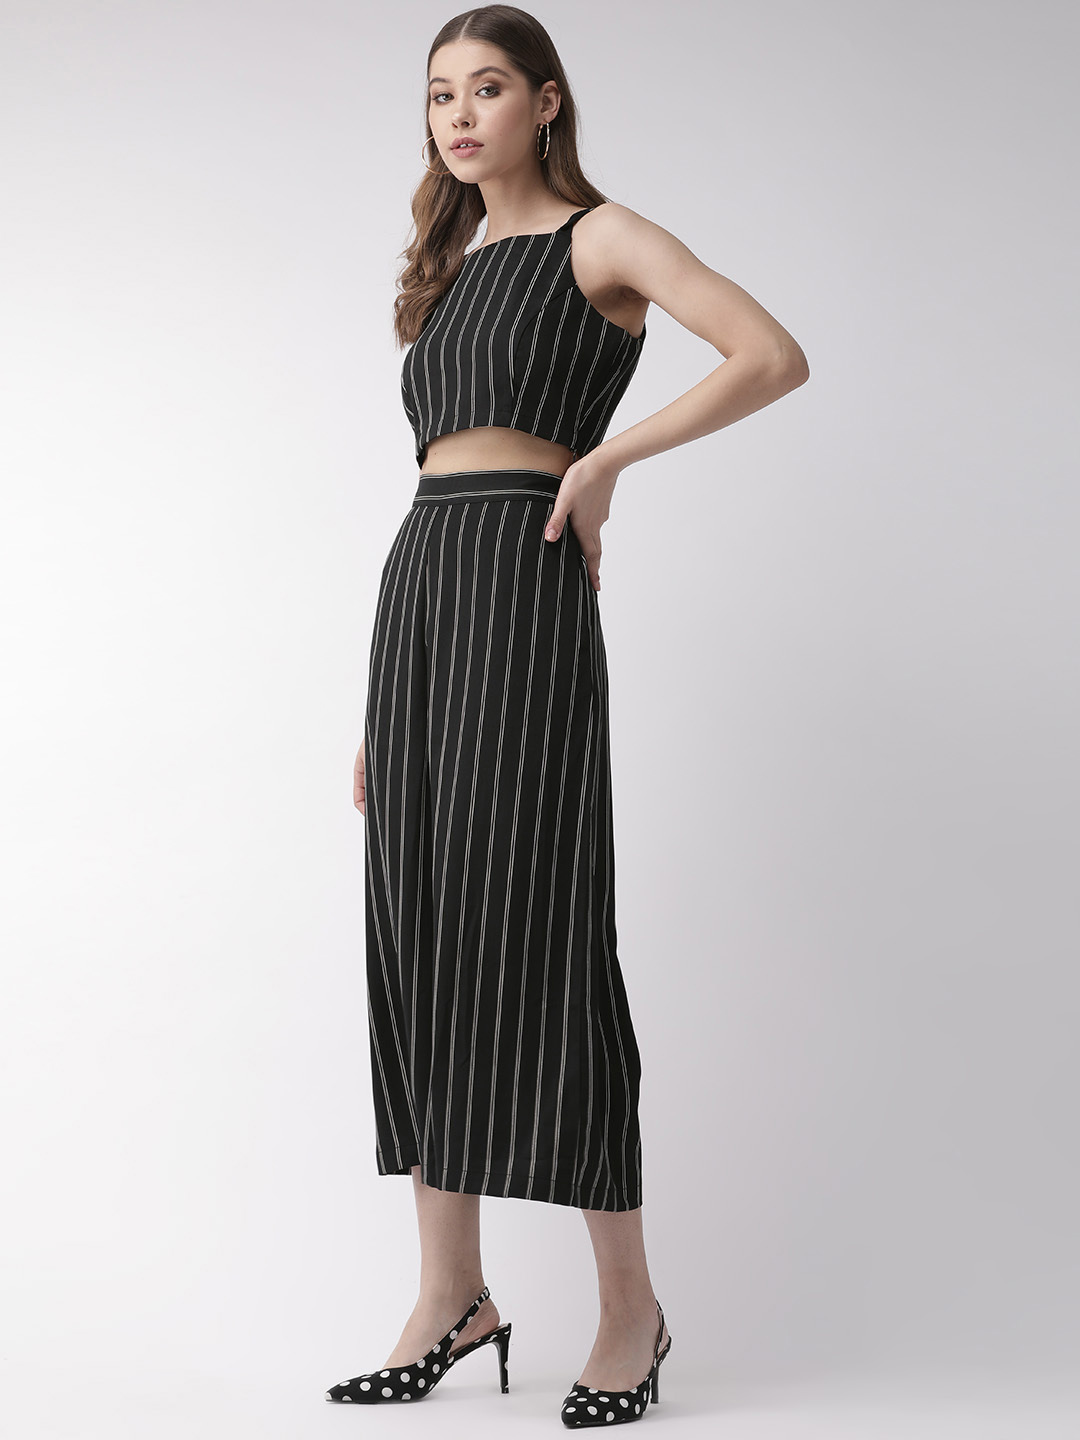 Co-ords-Let The Stripes Talk Pant Coord Set3